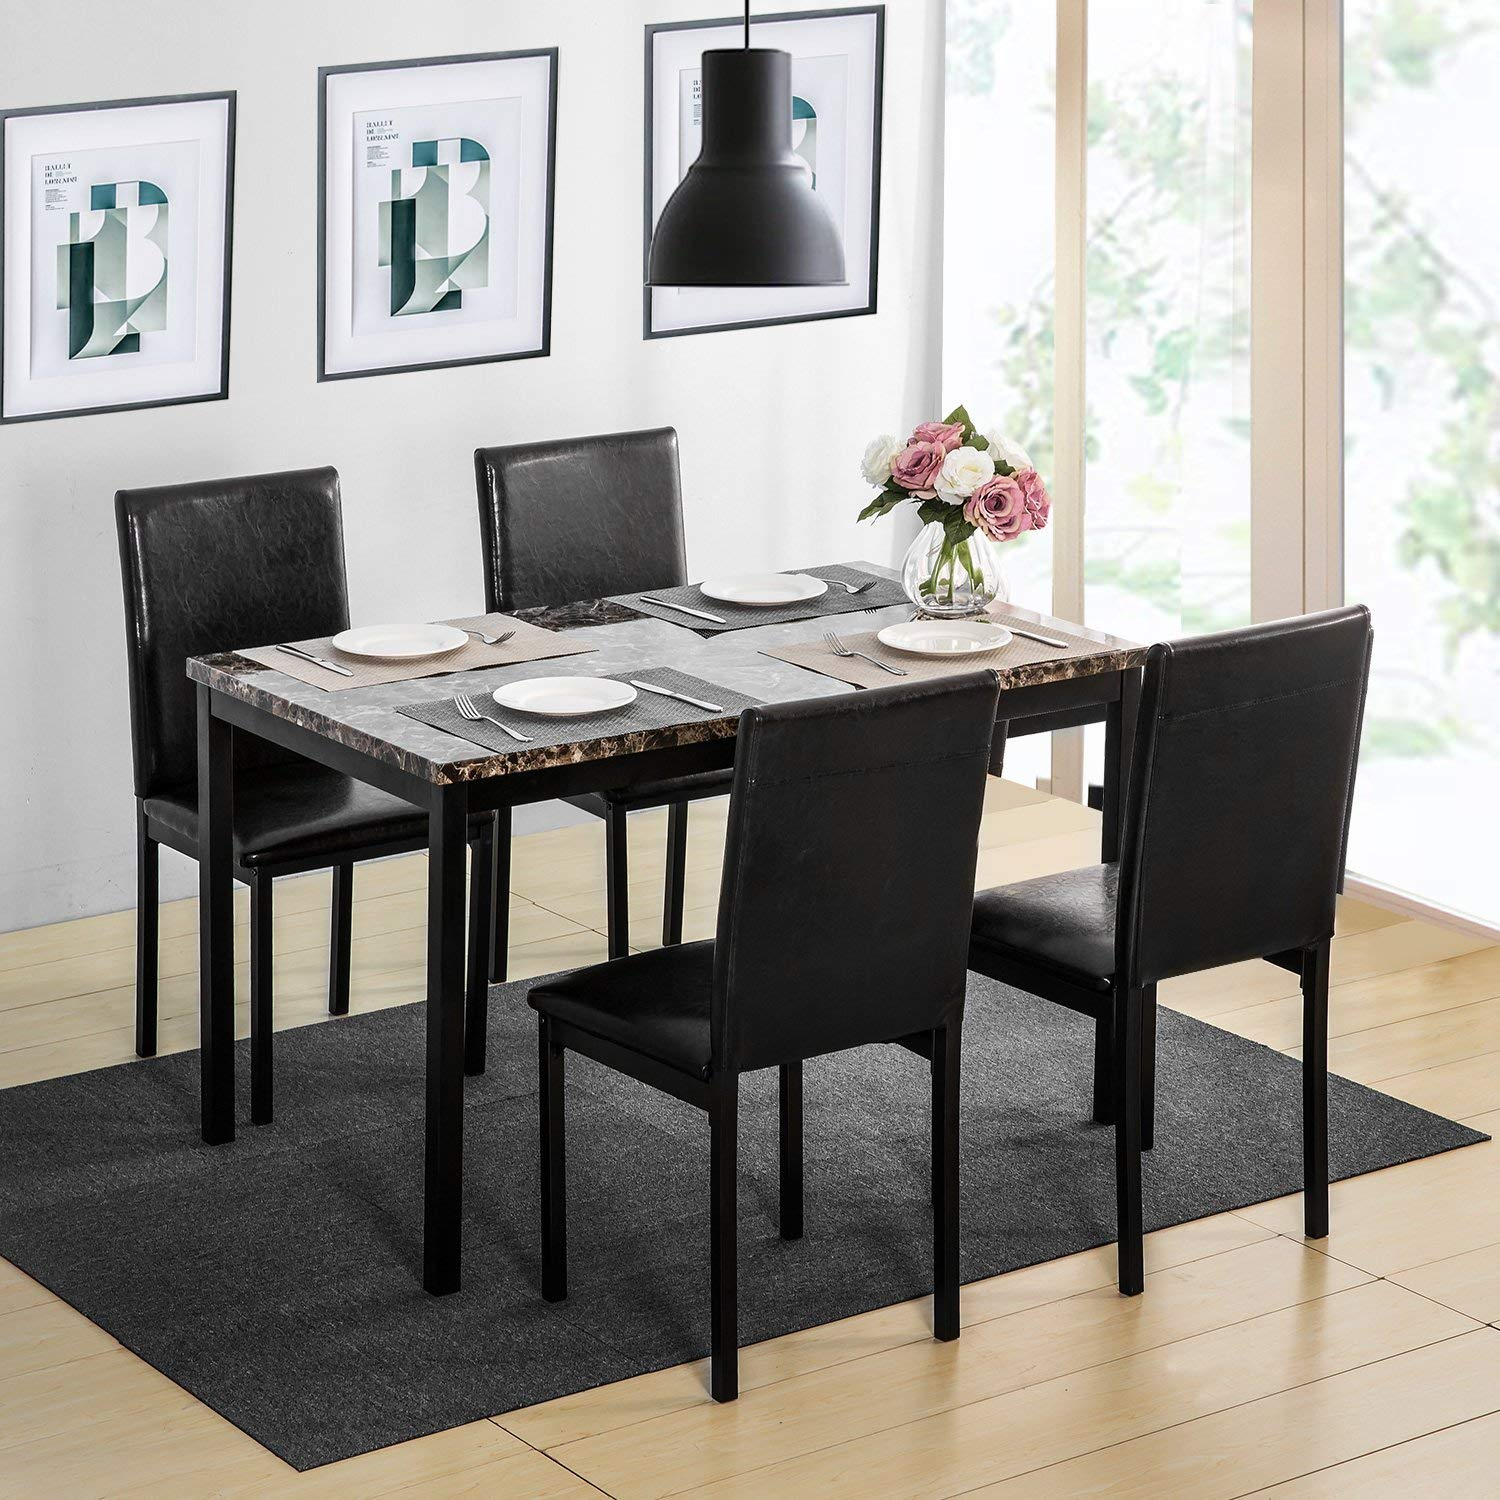 Ordinaire Harper U0026 Bright Designs 5 Piece Faux Marble And PU Leather Dining Set